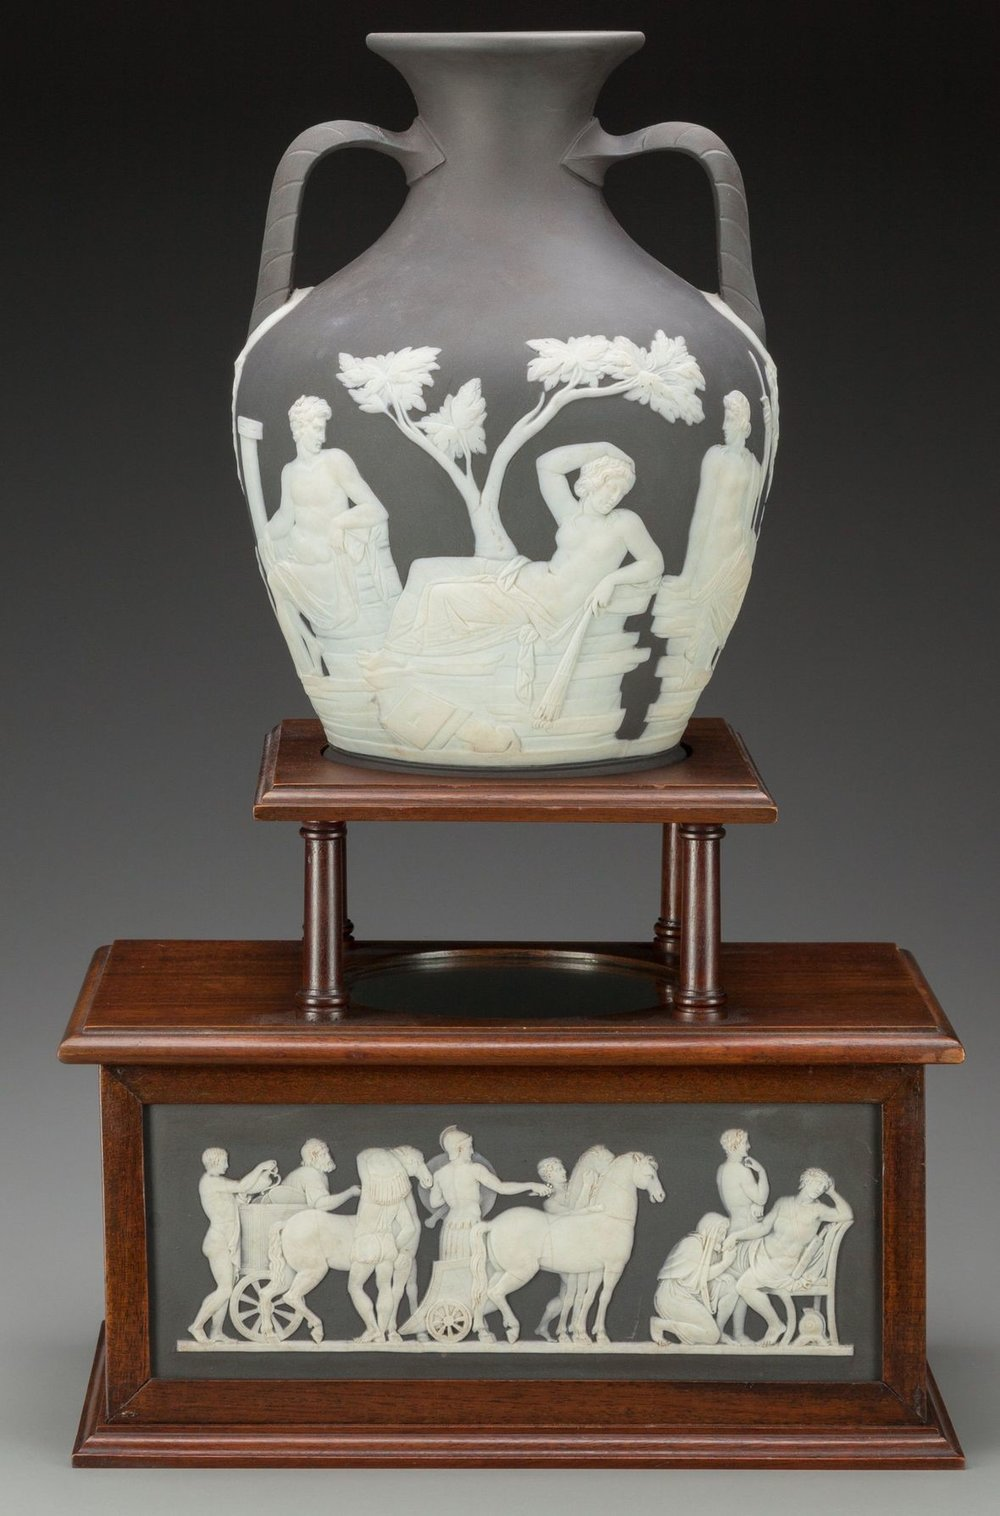 Staffordshire Potteries and Josiah Wedgwood - A Lecture by Nicolas M. Dawes